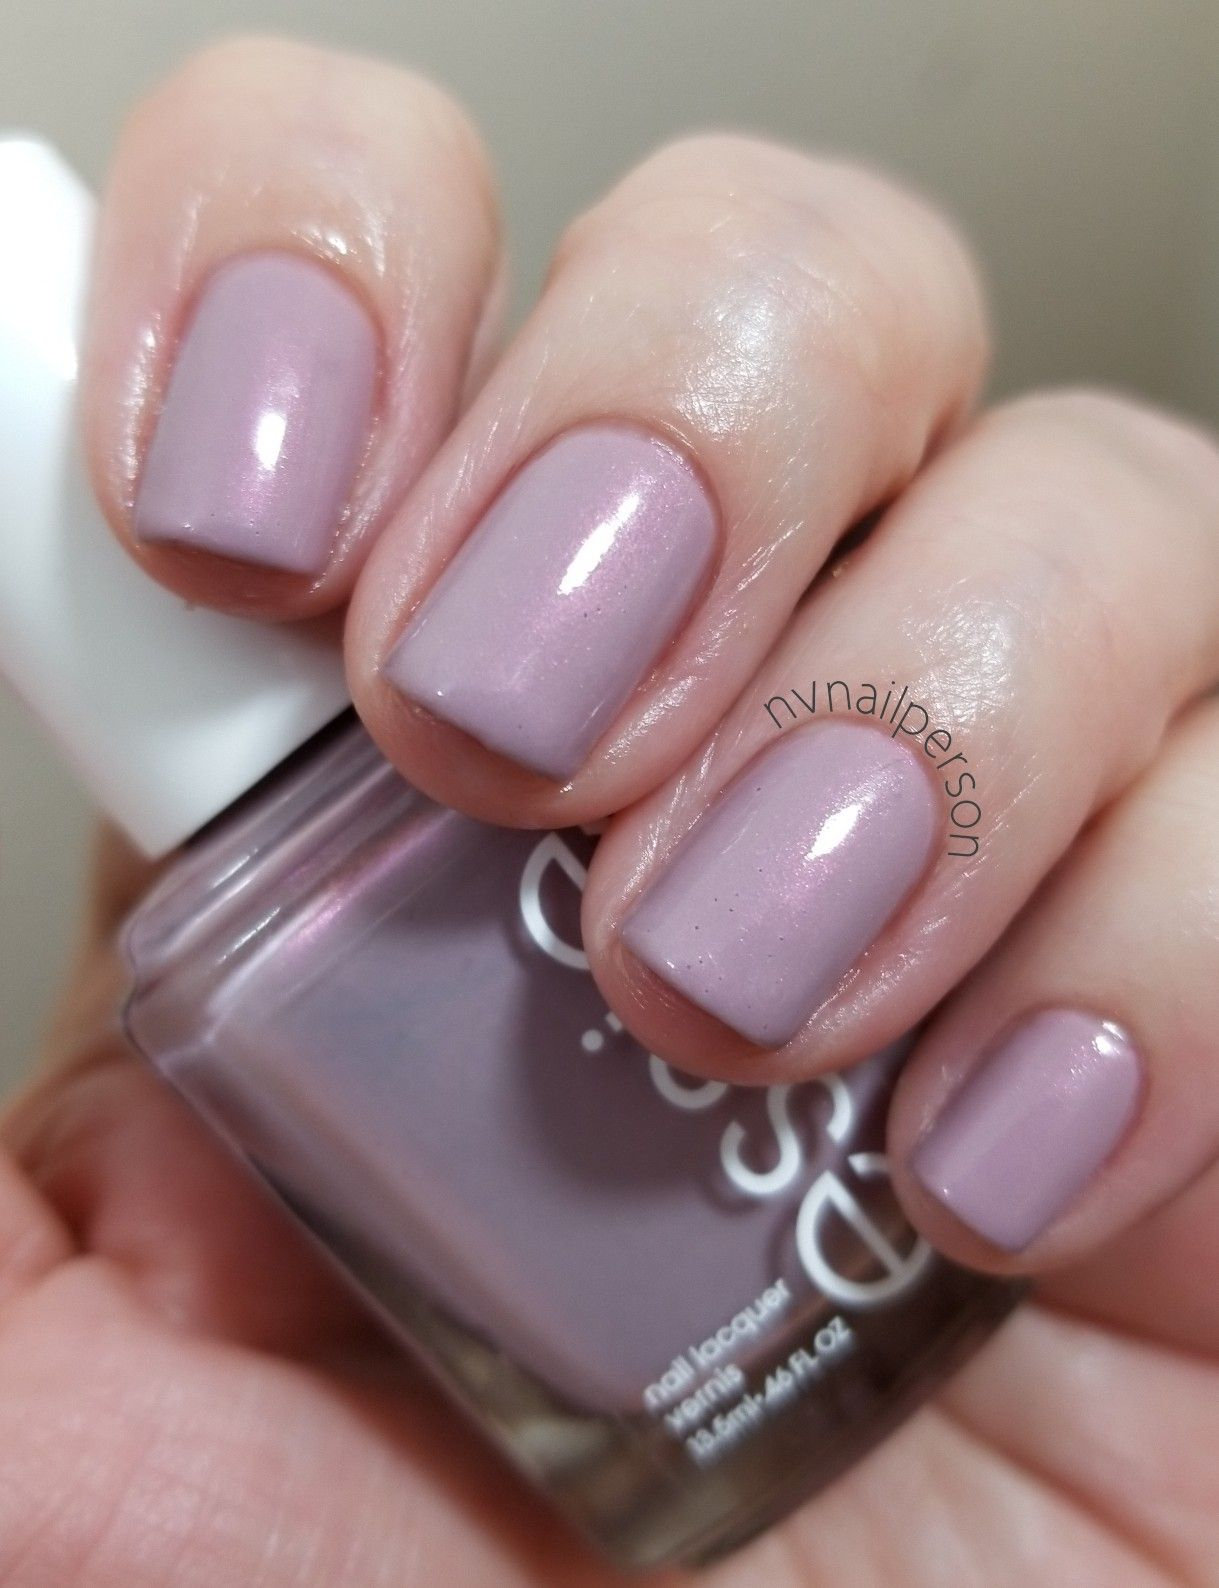 Essie - Wireless Is More - Serene Slate Collection - 2.3.19 | My ...